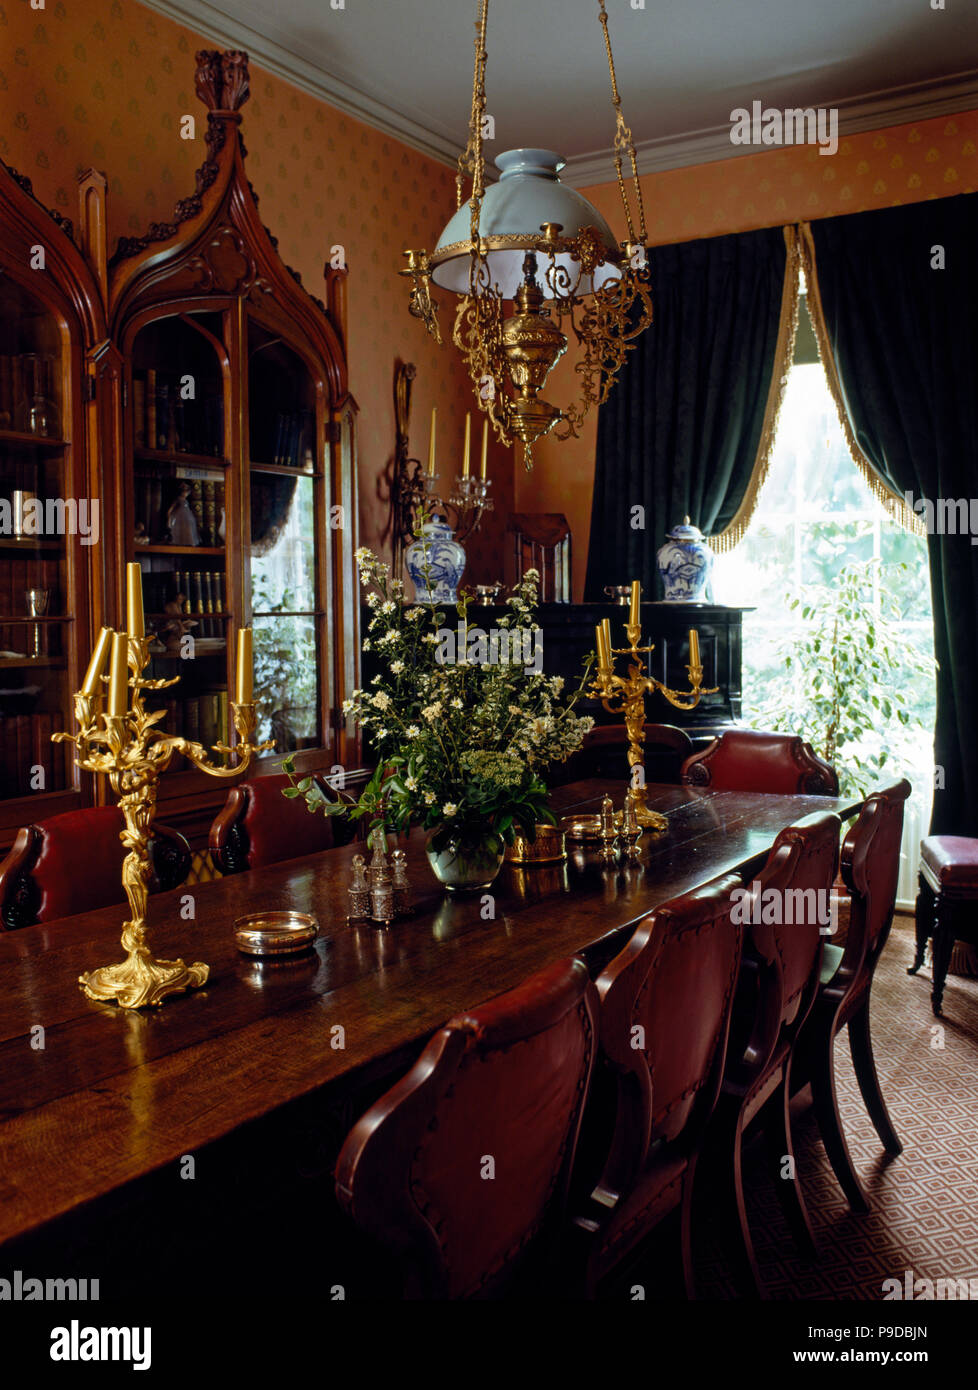 Edwardian style glass and brass light fitting above an antique dining table with gilt candelabra in an old fashioned dining room Stock Photo